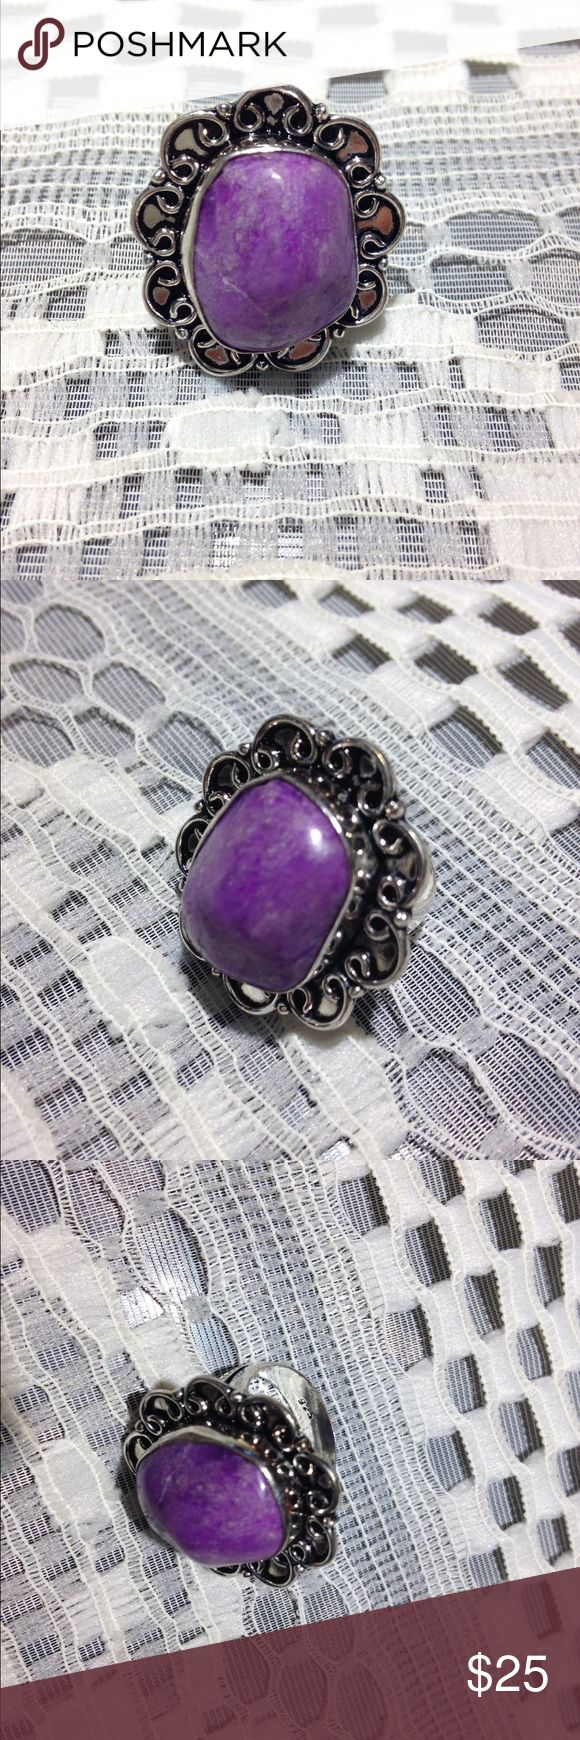 NIB Sterling Silver Semi-Precious Stone Ring Beautiful ornate sterling silver 925 stamped ring with genuine semi-Precious purple stone (I believe it is Charoite, but it is not labelled) Brand new in original packaging. Measures 1 7/10 cm in diameter. Jewelry Rings